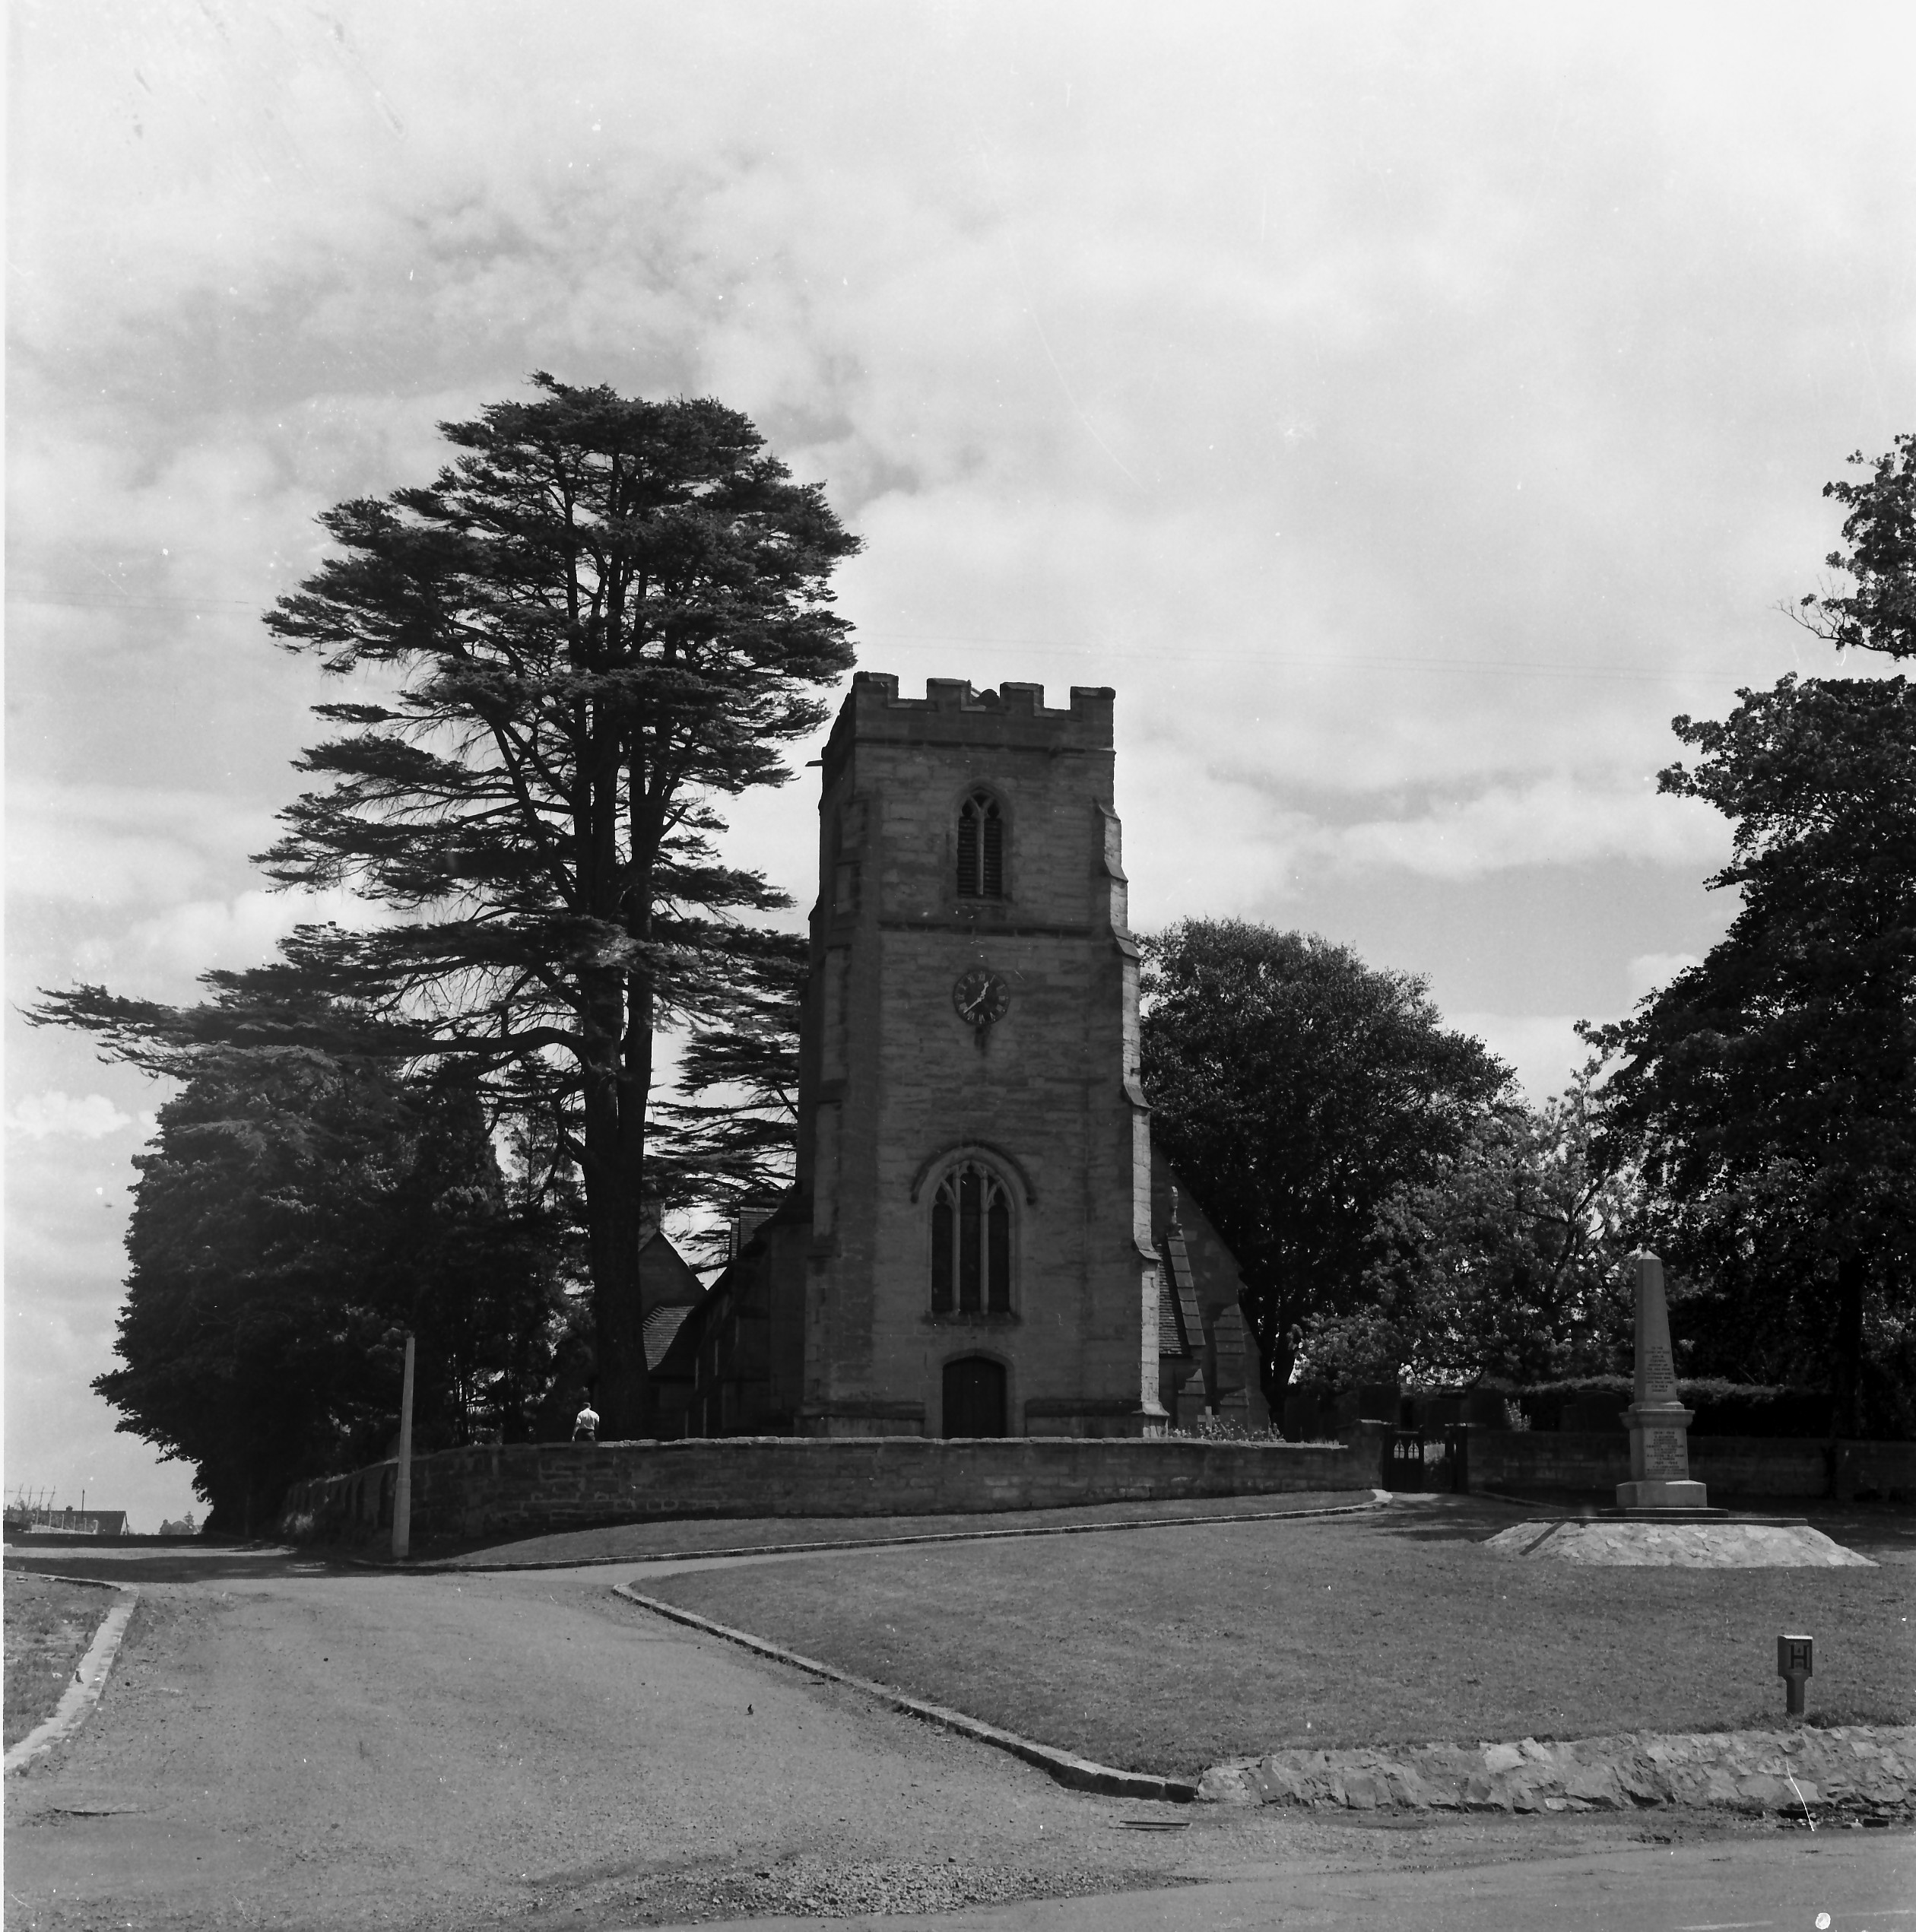 Whitnash-St-Margarets-church